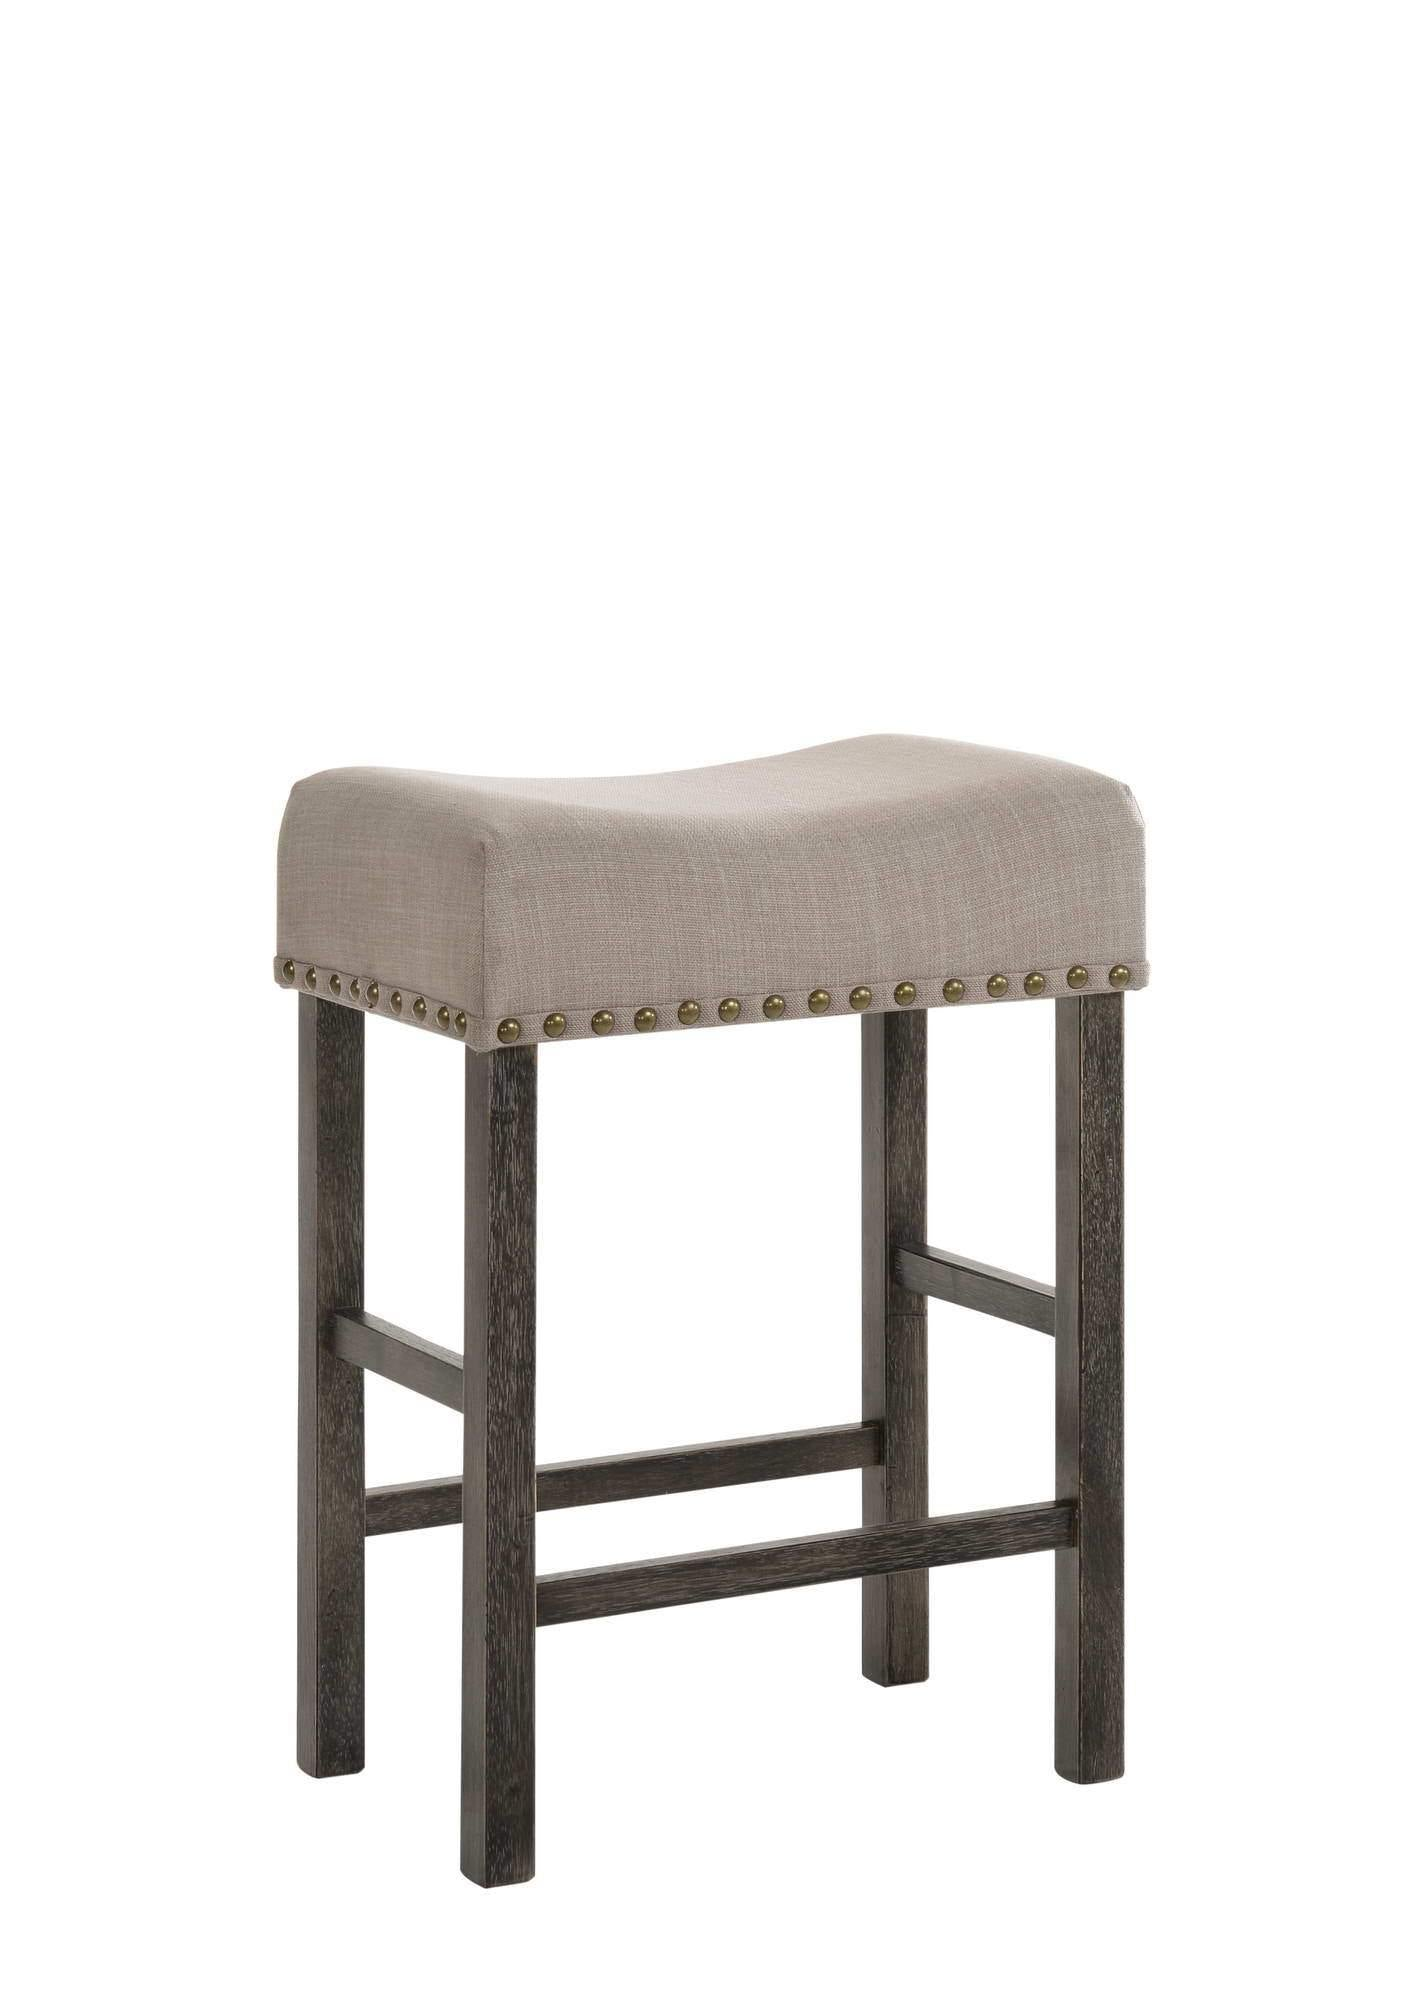 Counter Stool, Backless, Saddle Seat, Upholstered - My USA Furniture